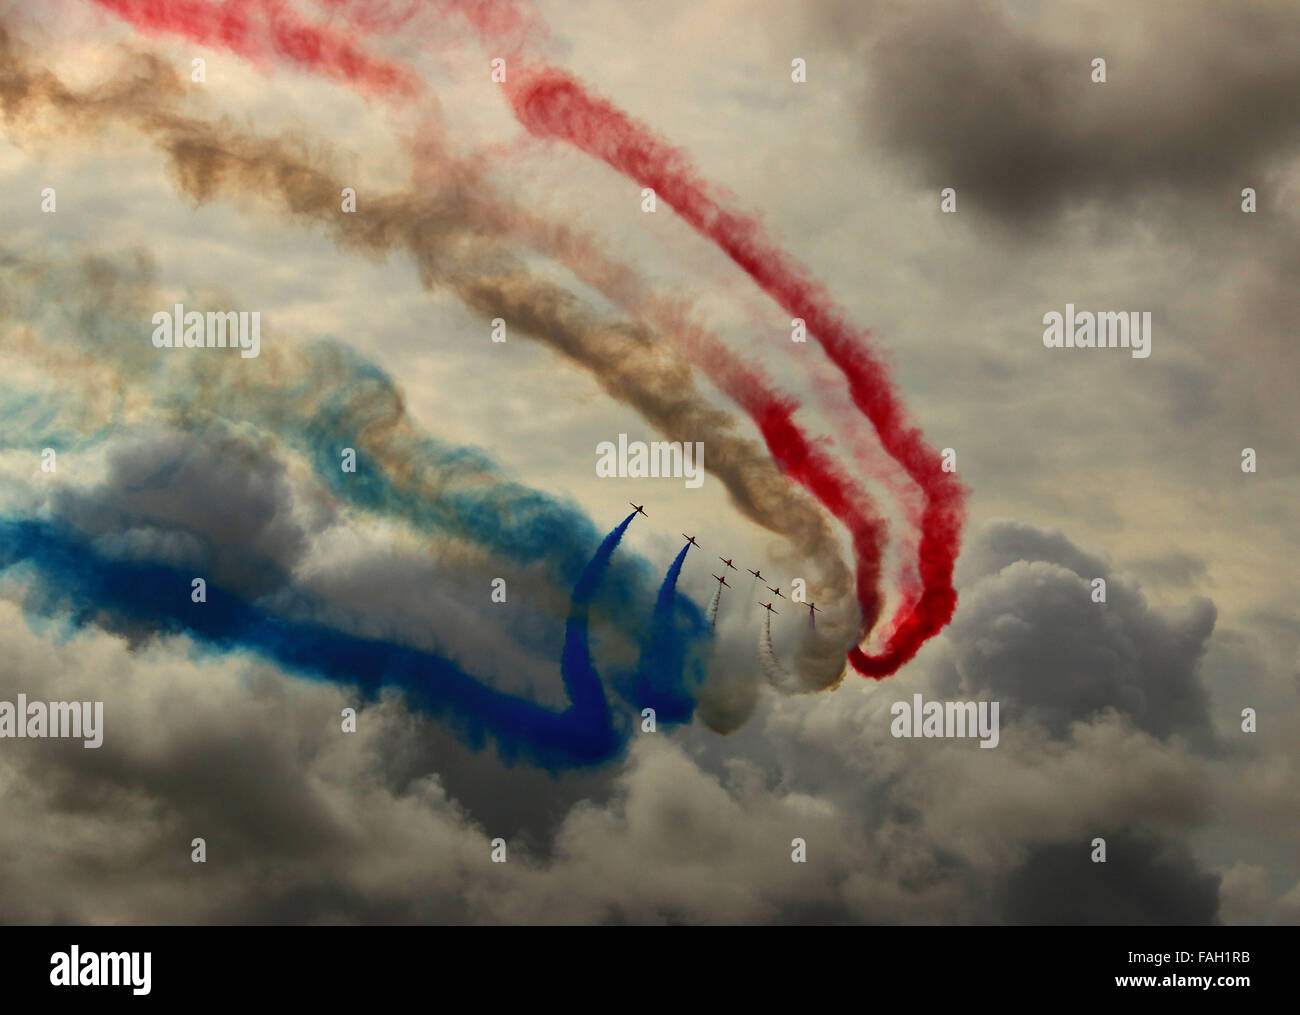 RAF Red Arrows Aerobatic Display Team paint a stormy sky with red white and blue smoke. - Stock Image